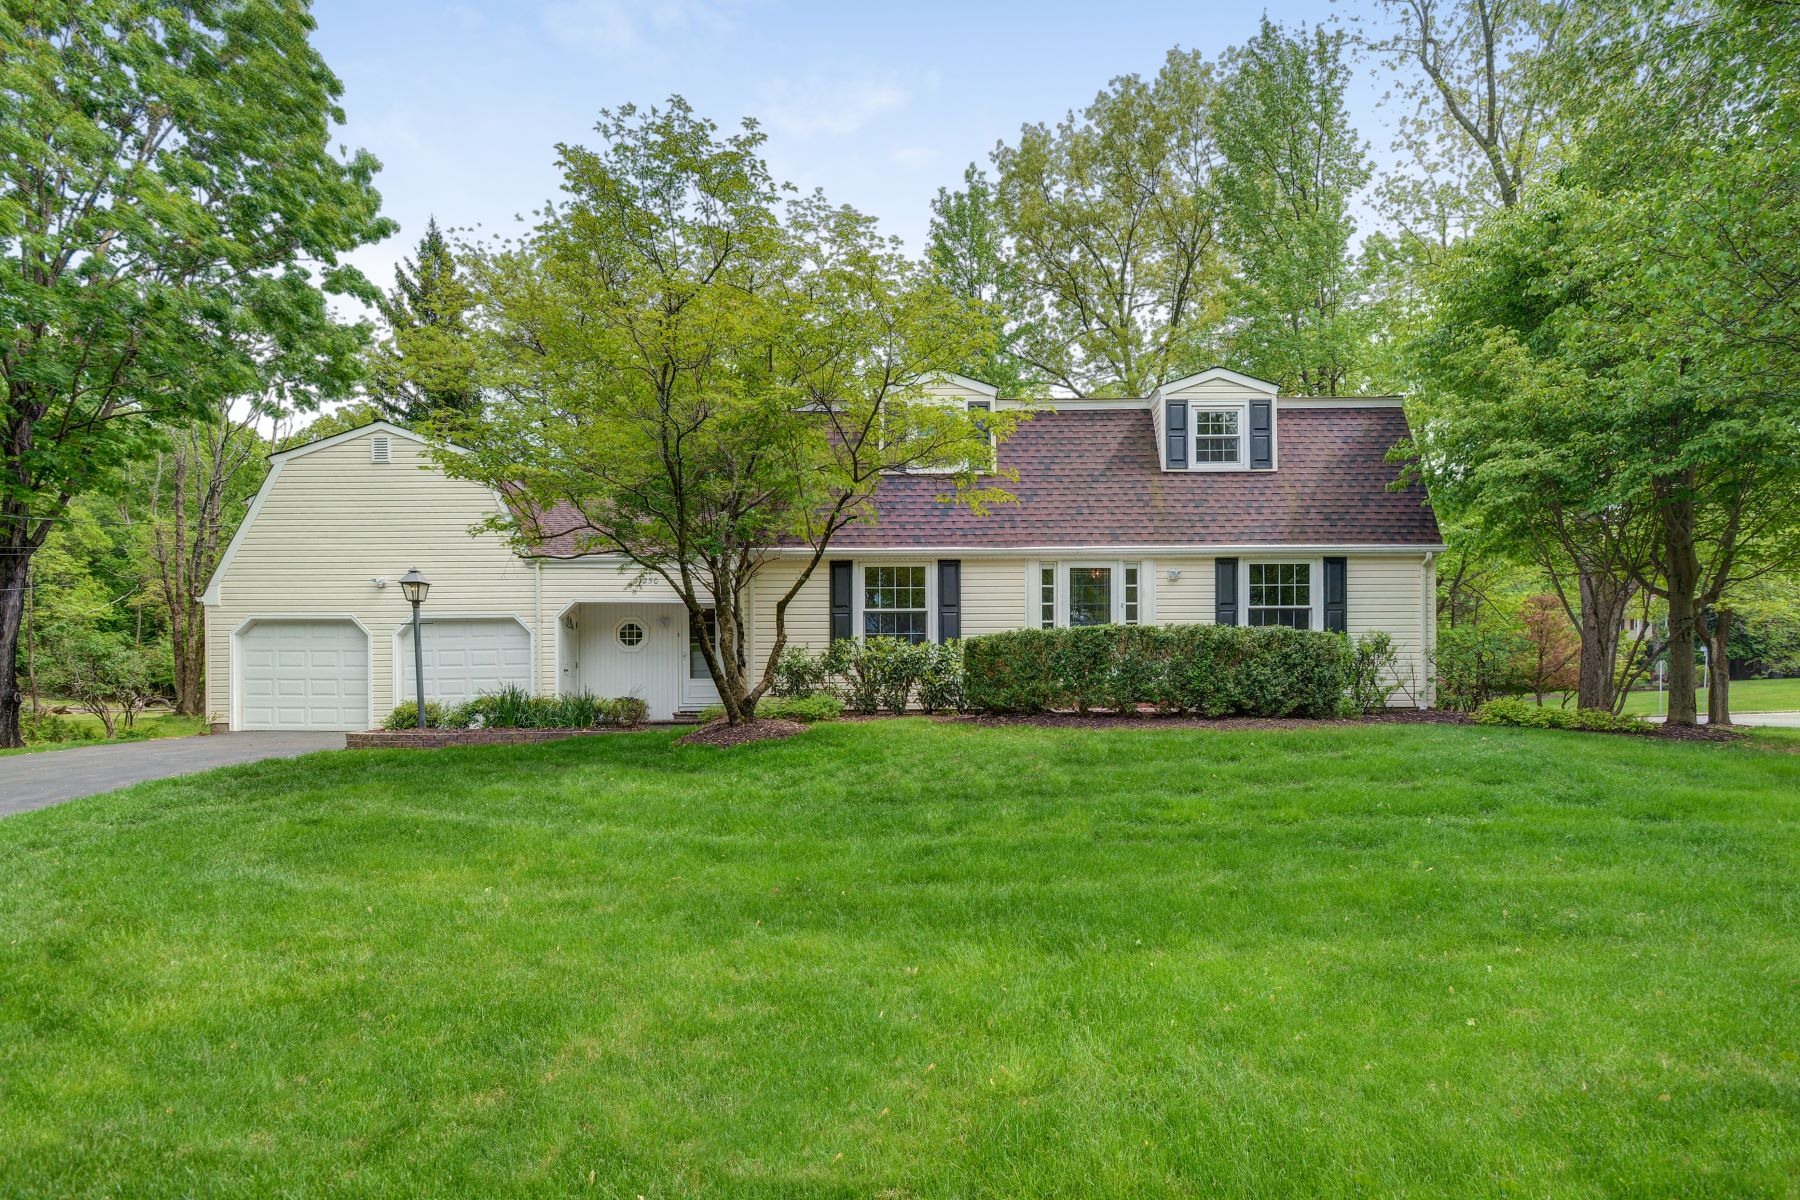 Single Family Homes for Sale at Magnificent Colonial 1250 Dogwood Drive Bridgewater, New Jersey 08807 United States